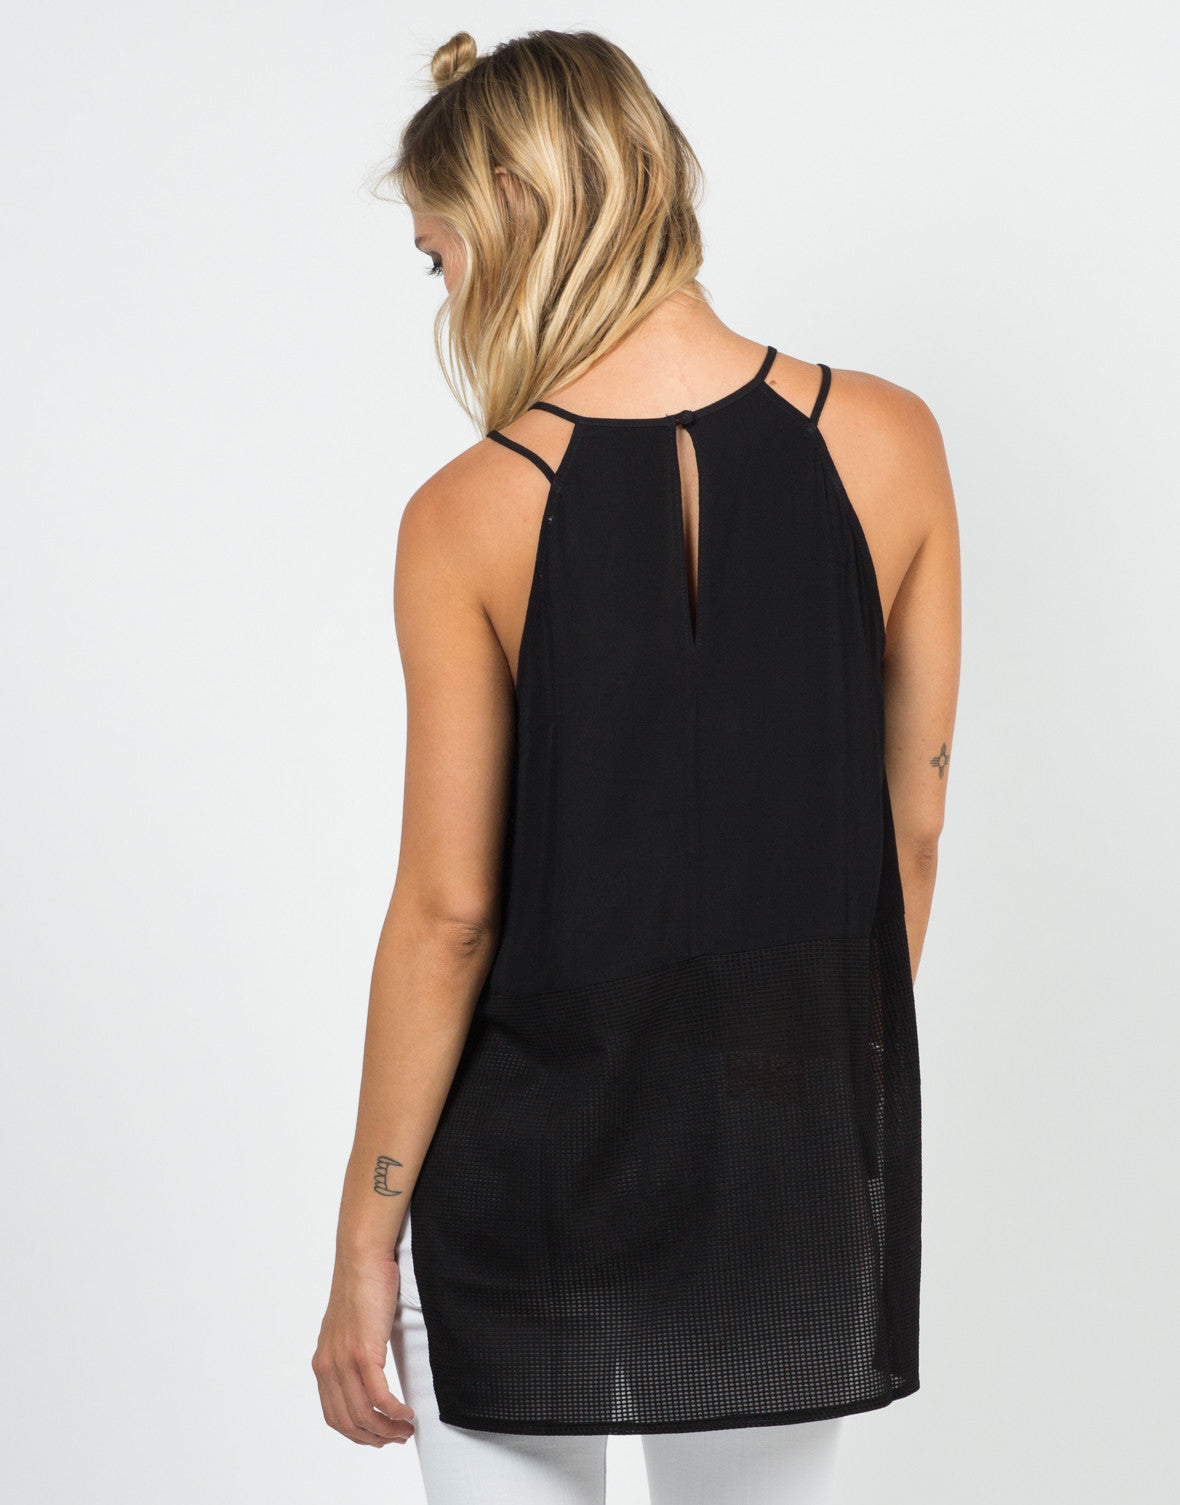 Back View of Mesh Contrast Strappy Tank